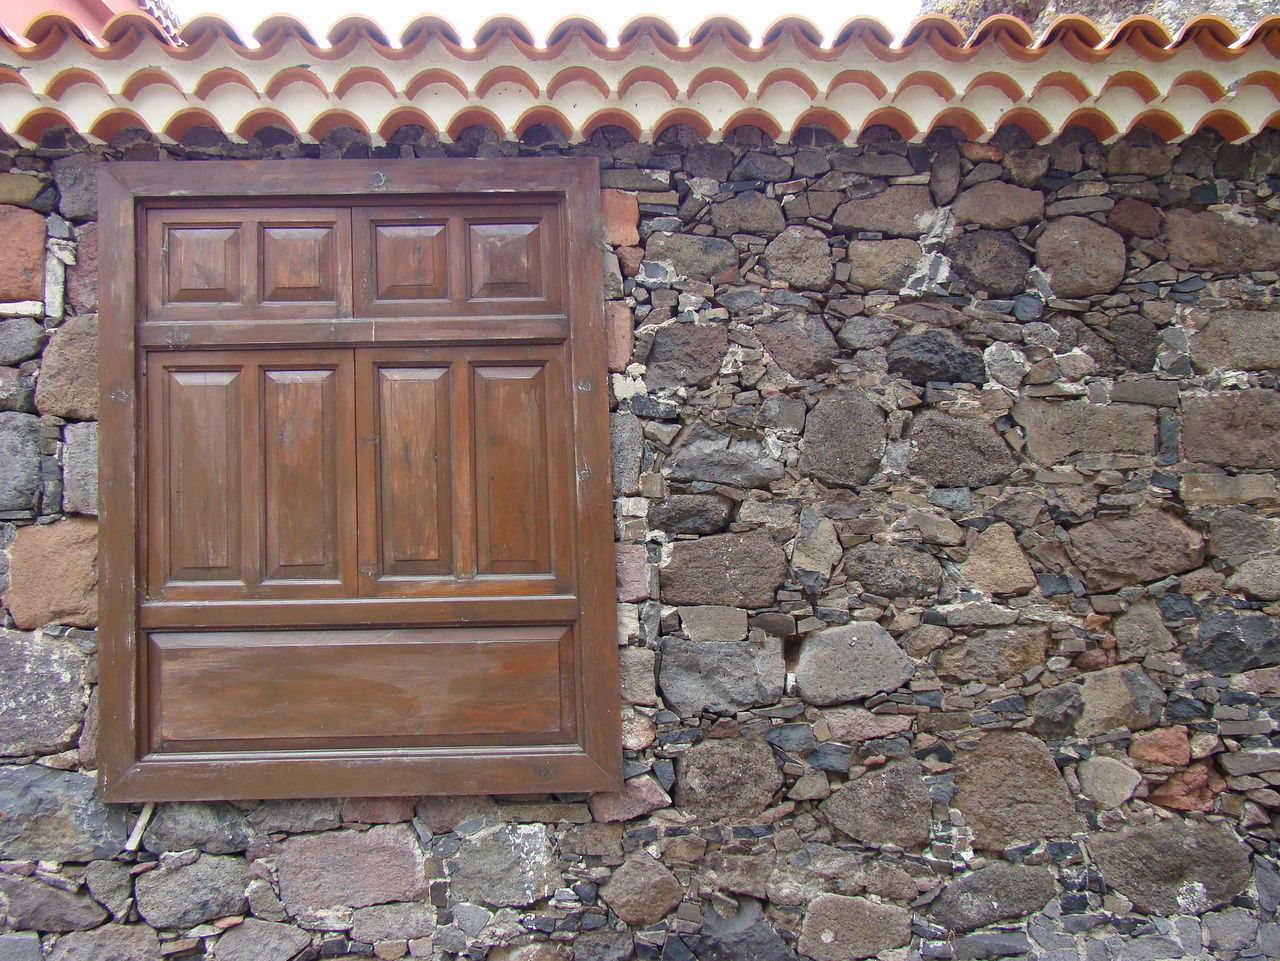 Architecture Building Exterior Closed Windows Door House Old Architecture Old Tradition Architecture Stone Material Stone Walls Tenerife Island The Walls And Windows Window